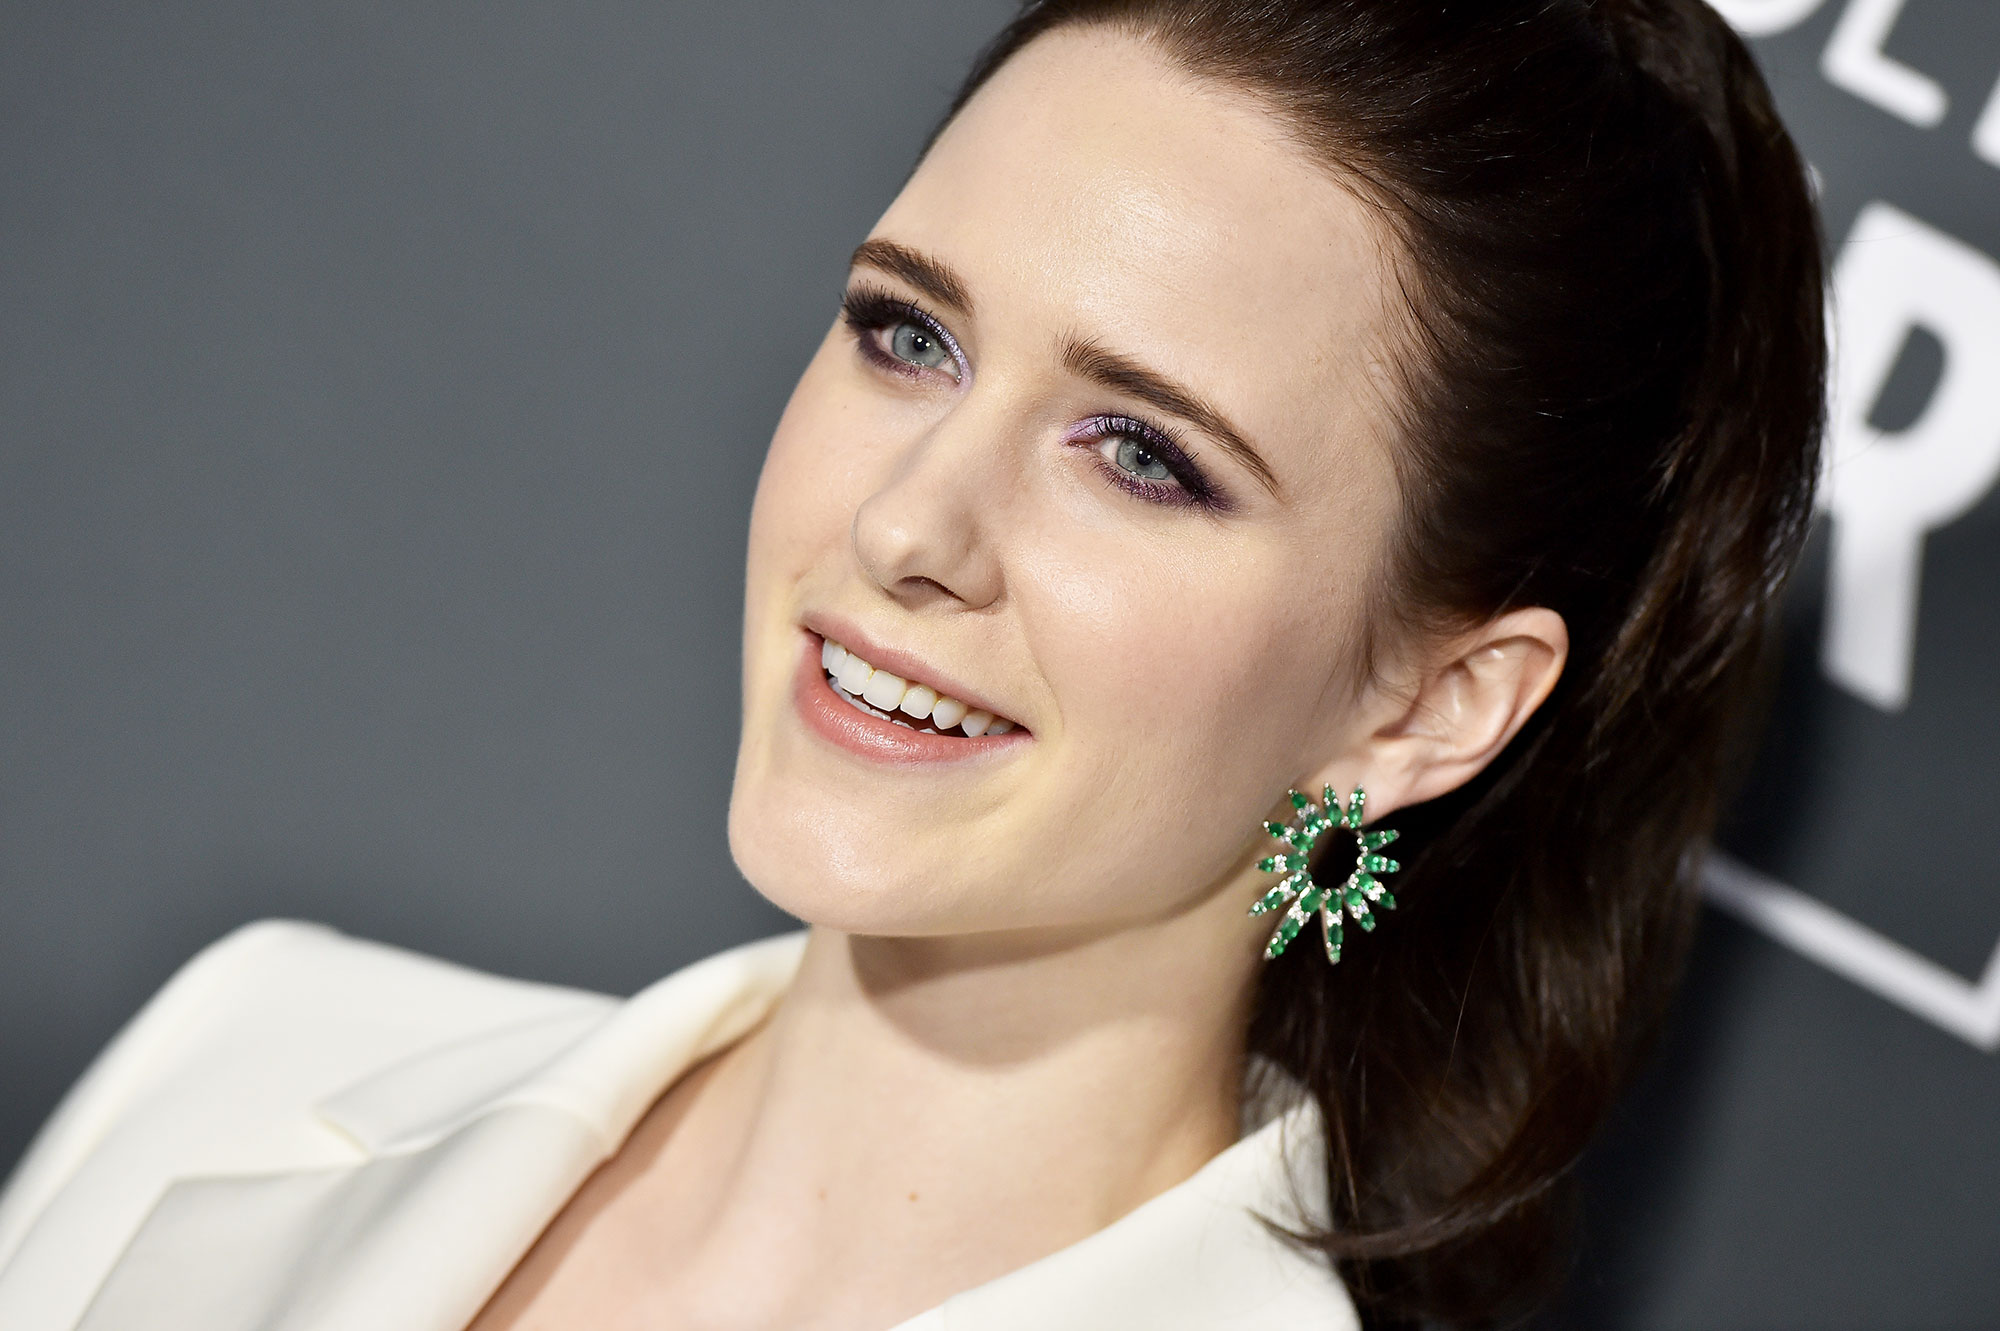 Rachel Brosnahan Critics' Choice Awards 2019 - With a sexy, swingy high ponytail by hairstylist Mara Roszak and beige lips by makeup pro Lisa Aharon using Revlon.